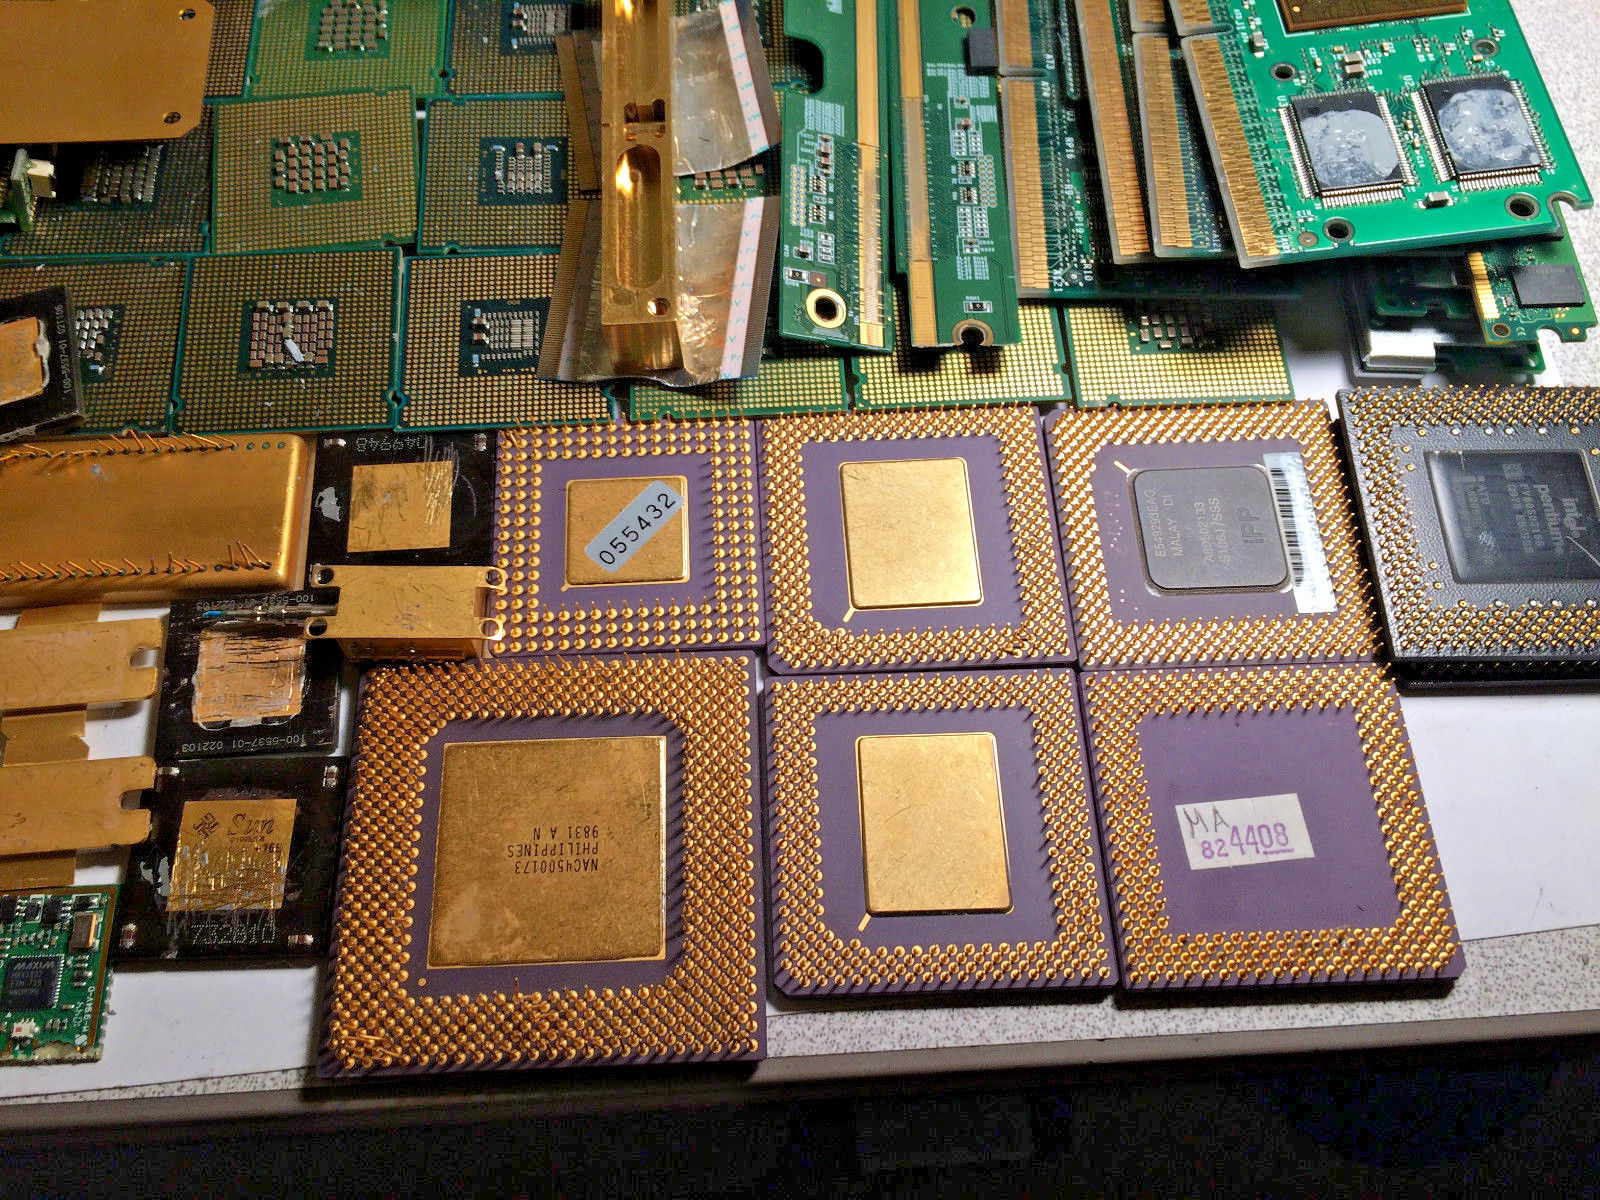 21 lbs Gold Scrap CPU Processors, Ram, Finger Boards for Gold Recovery Art